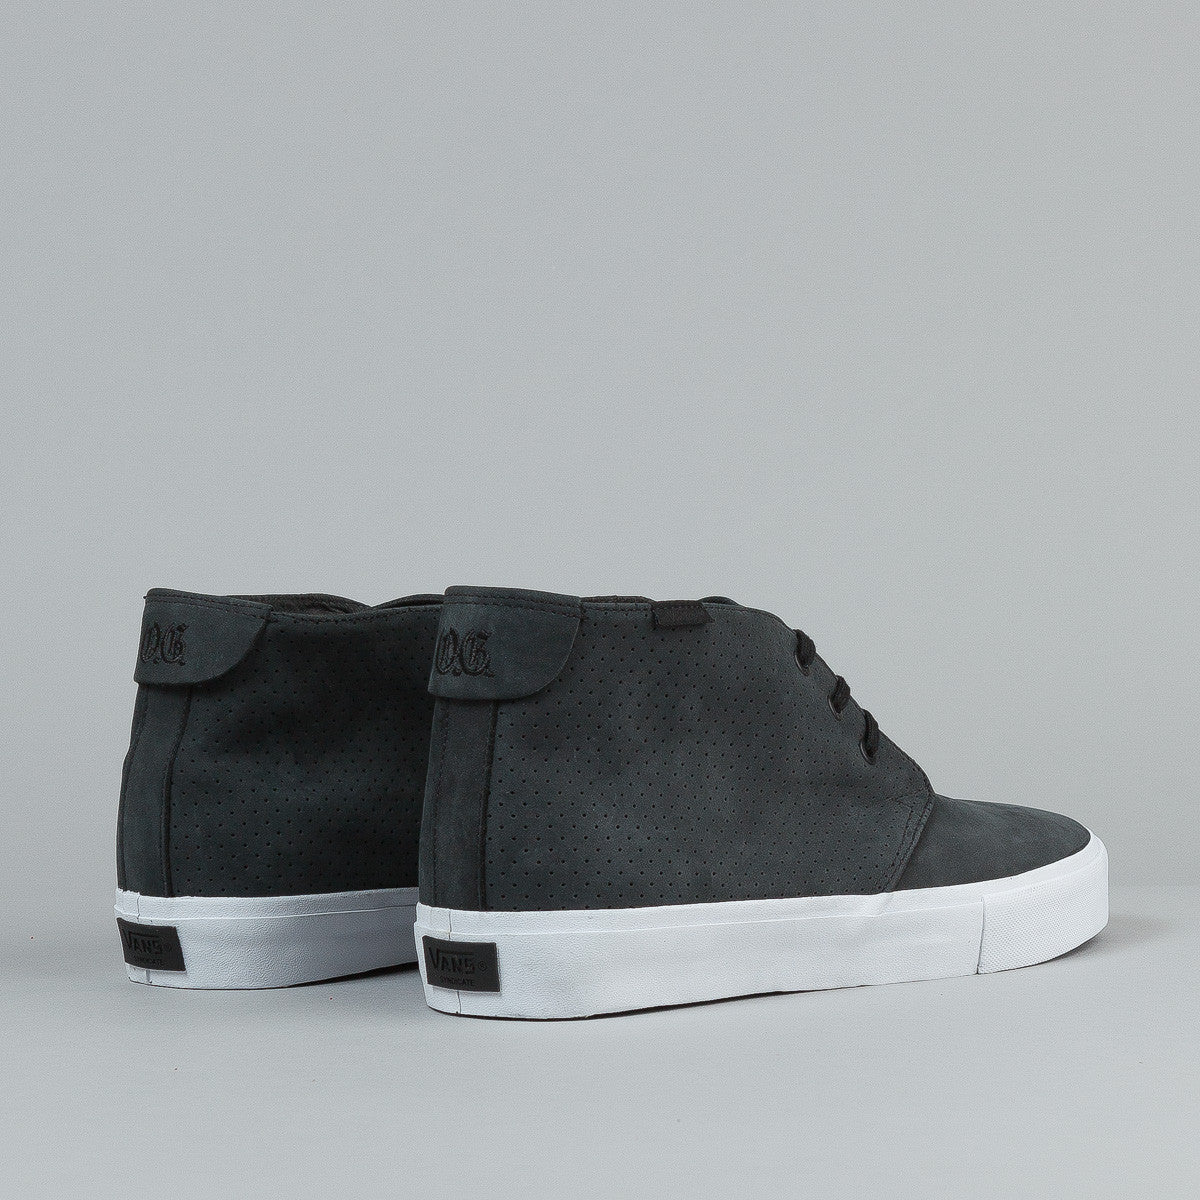 Vans Chukka Decon 'S' Shoes - (Ice-T) Black Perforated